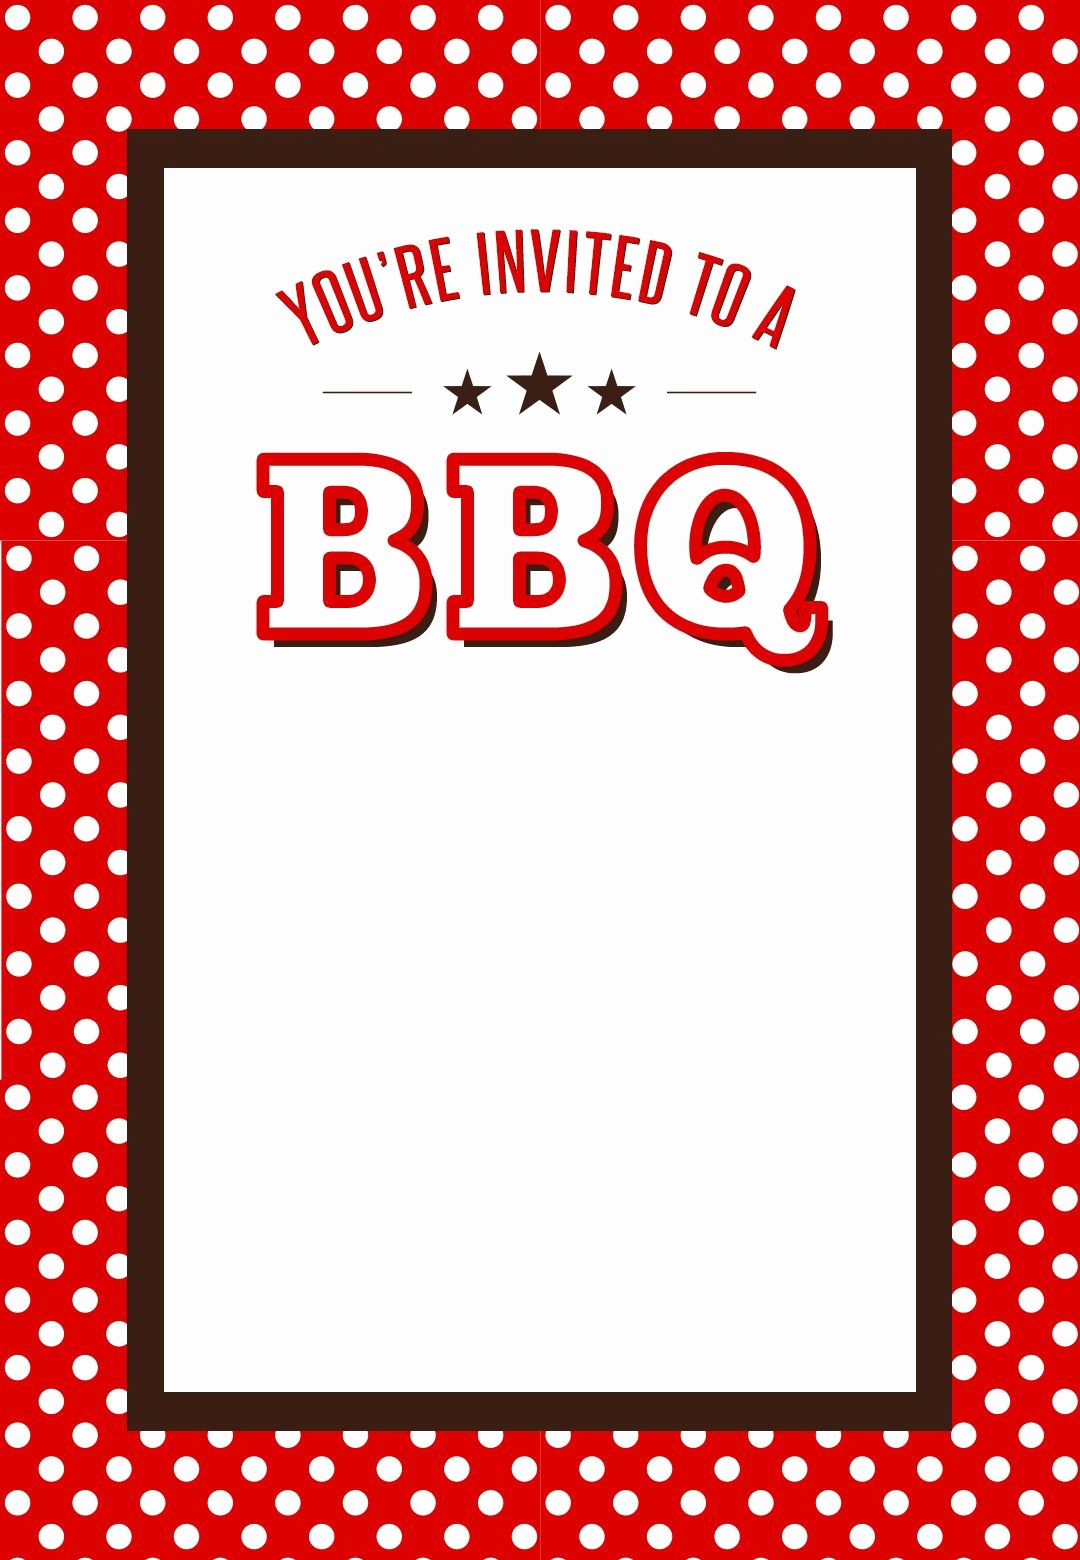 Bbq Party Invitation Templates Free Luxury Bbq Party Invitation Free Printables